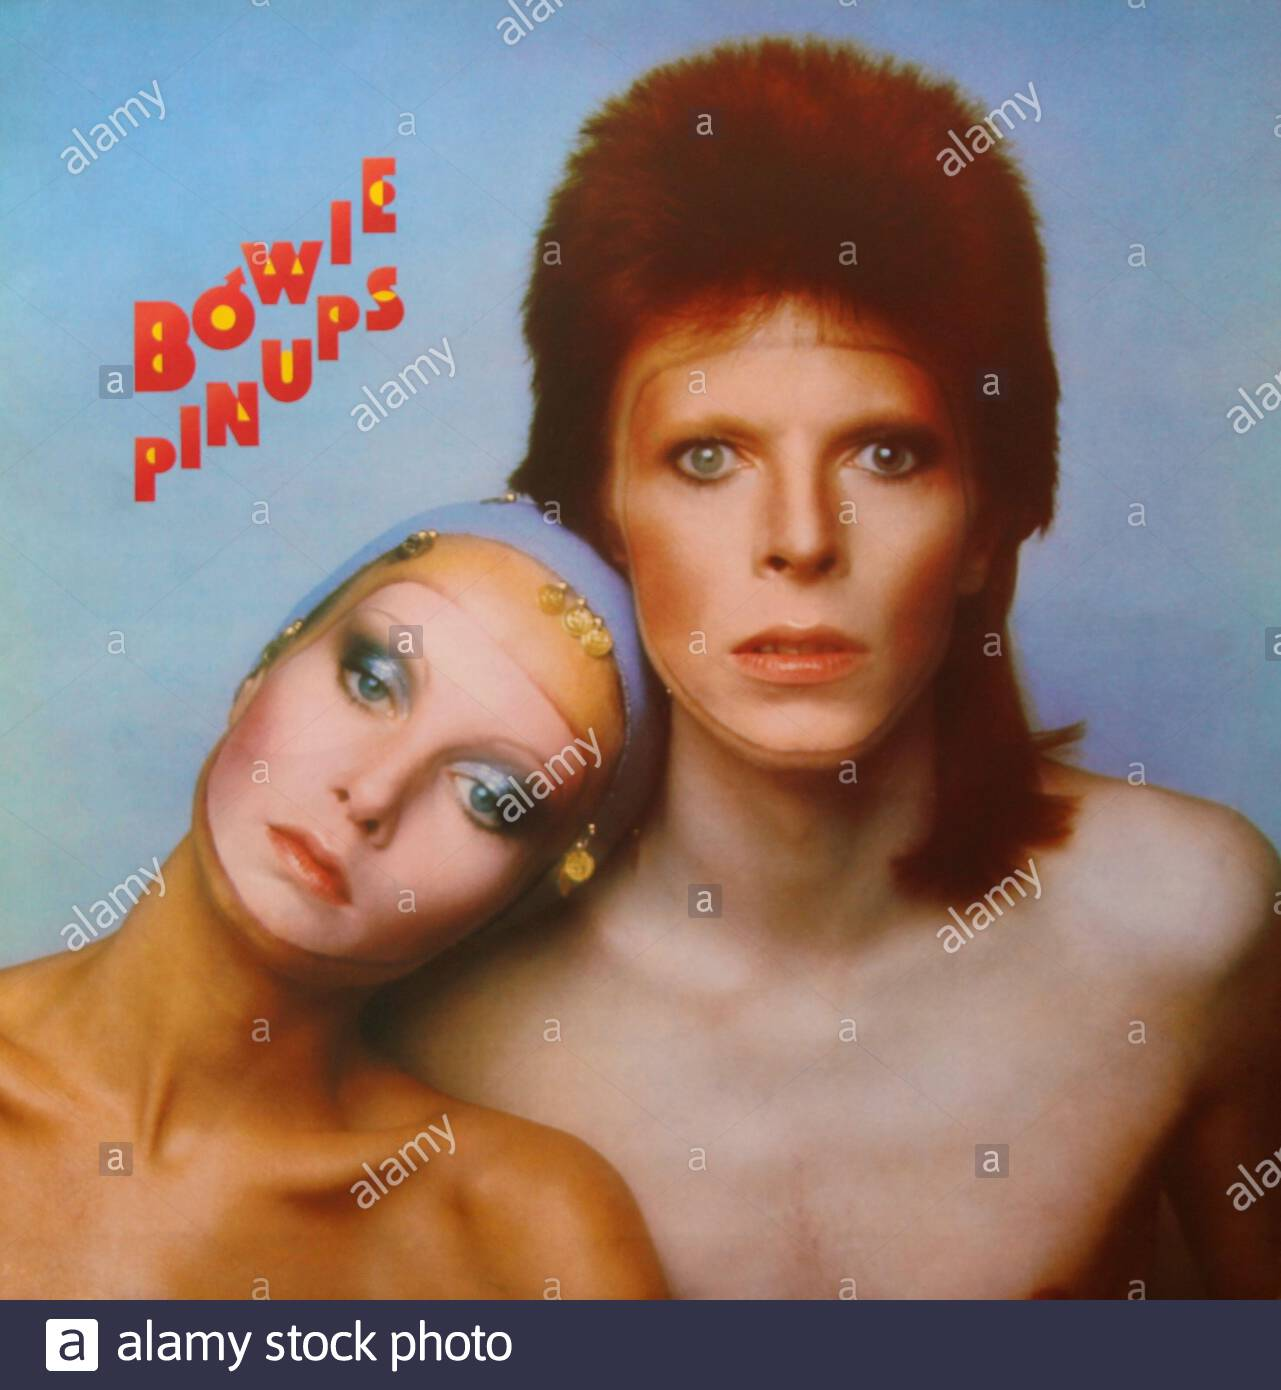 original-12-inch-album-pin-ups-by-david-bowie-vinyl-disc-released-19-october-1973-front-cover-2CCR0YN.jpg